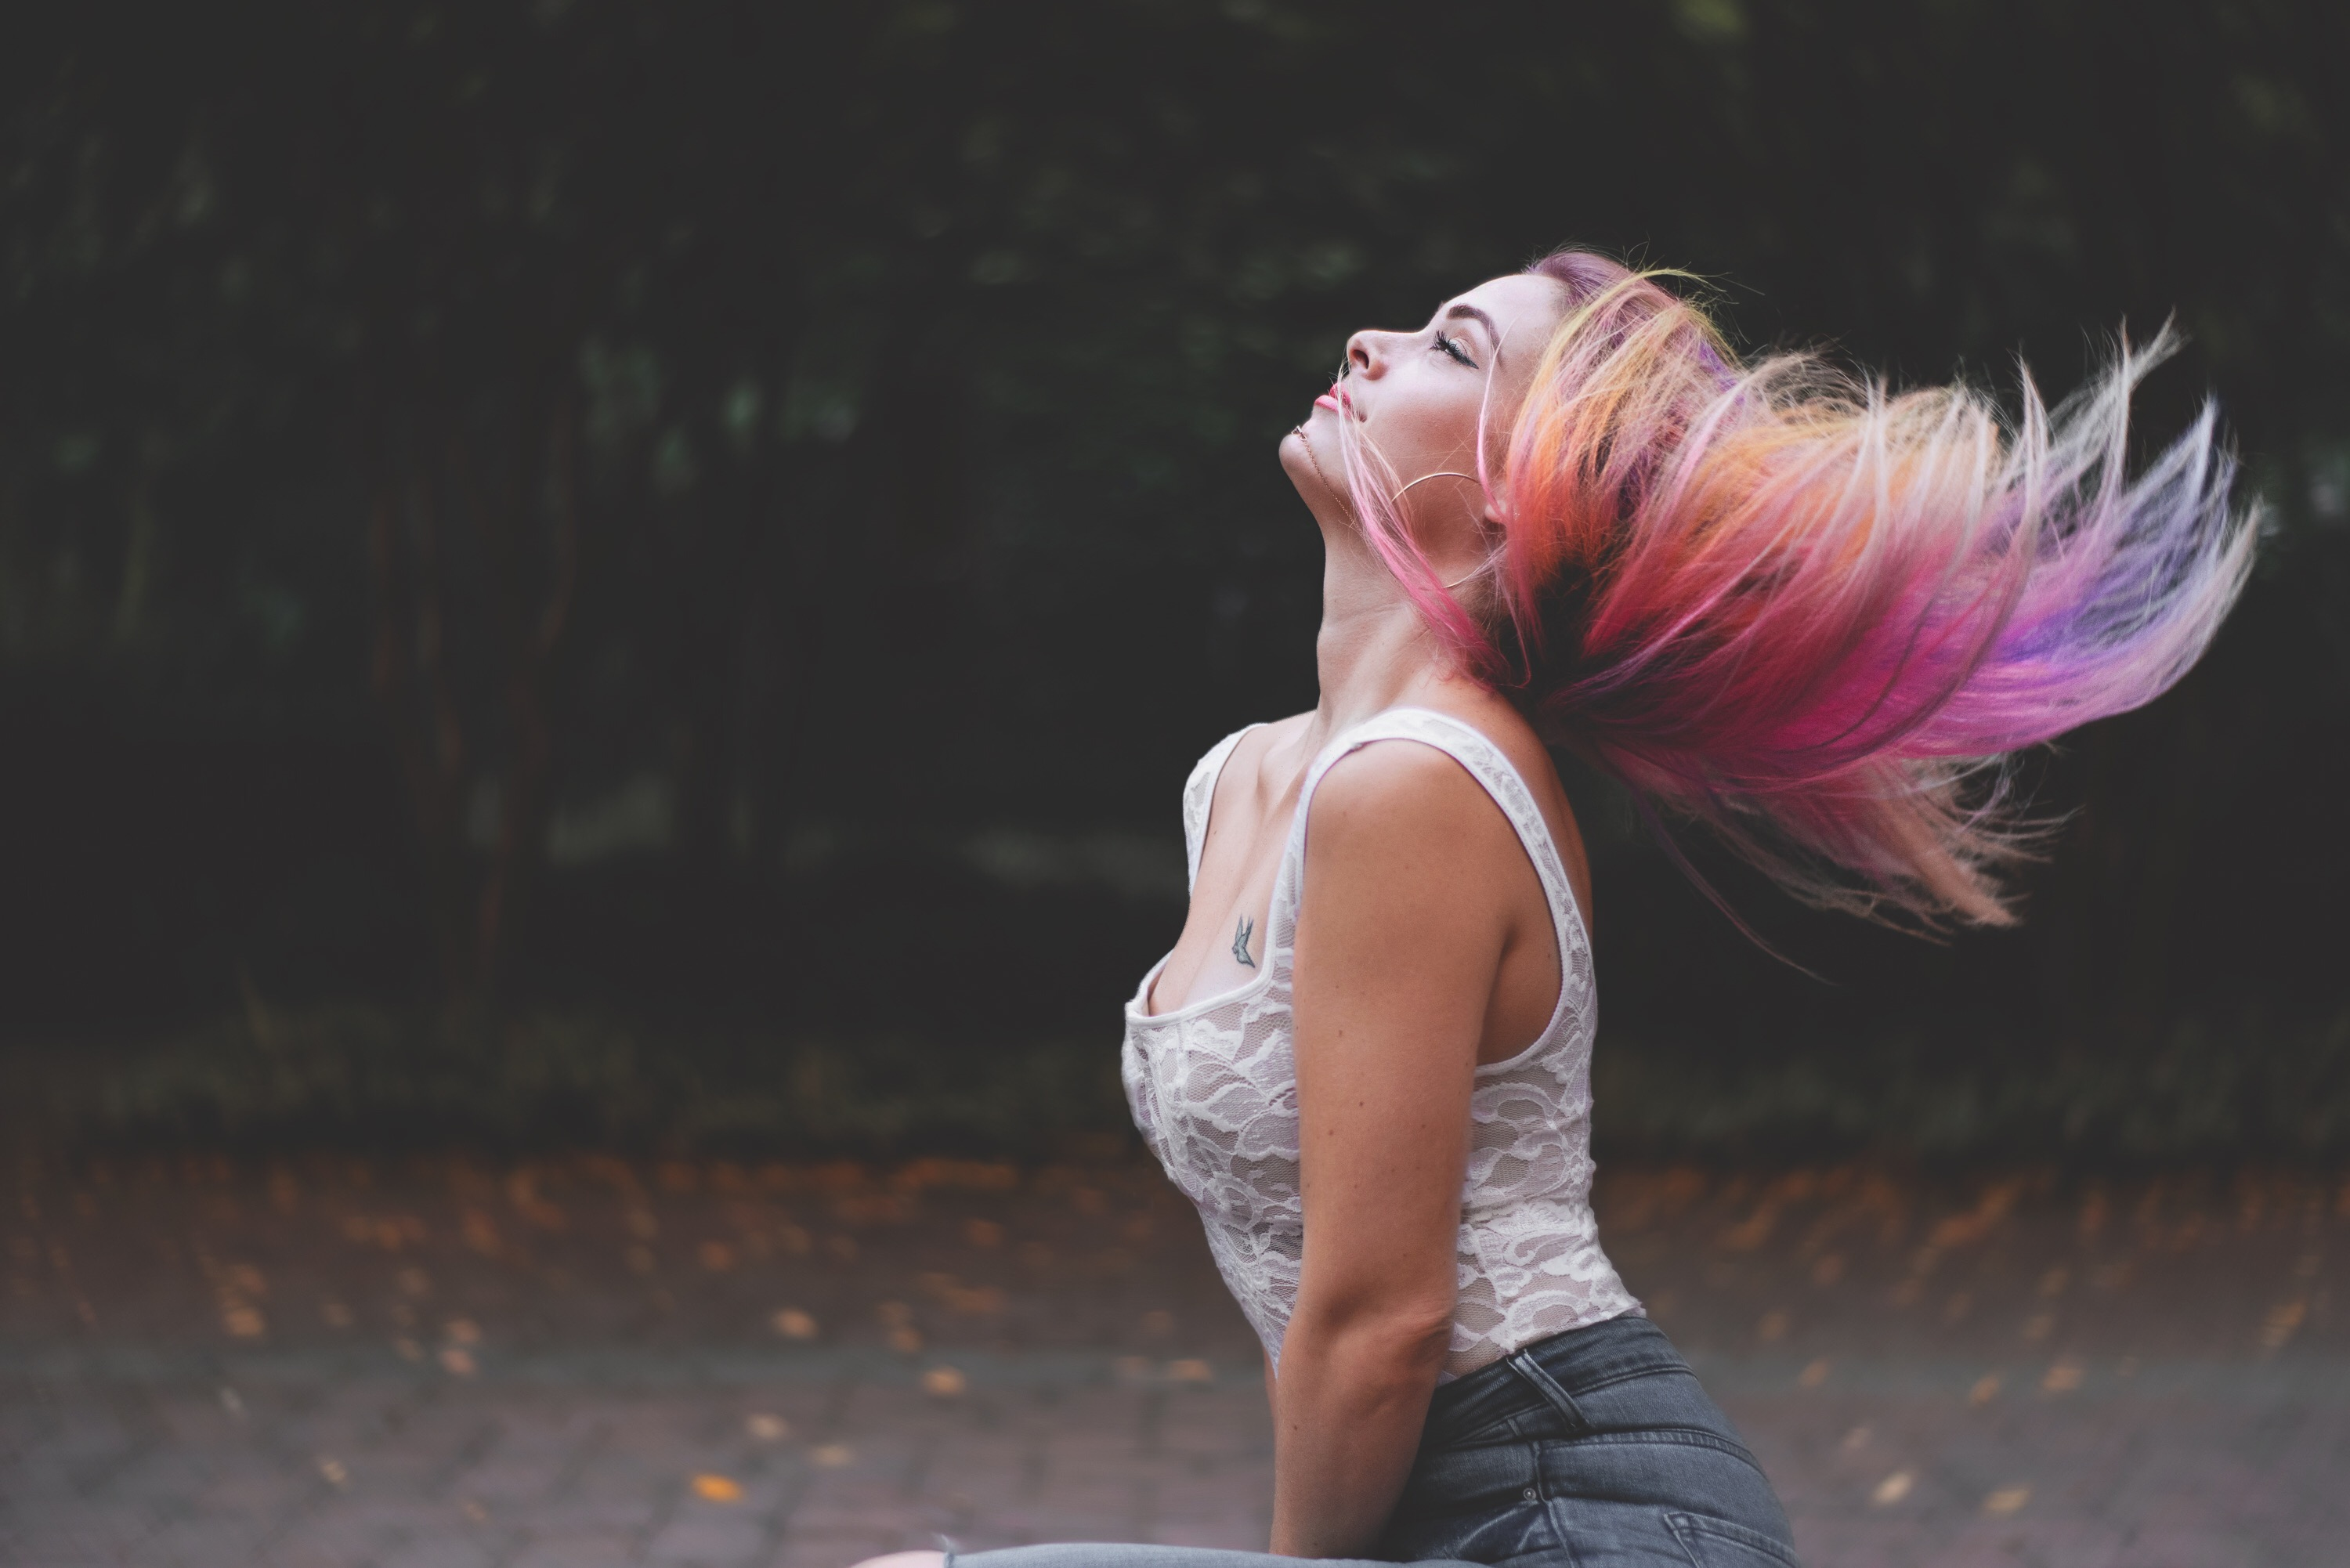 These 3 Vegan Hair Dyes Are Drop Dead Gorge–And Way Better For You